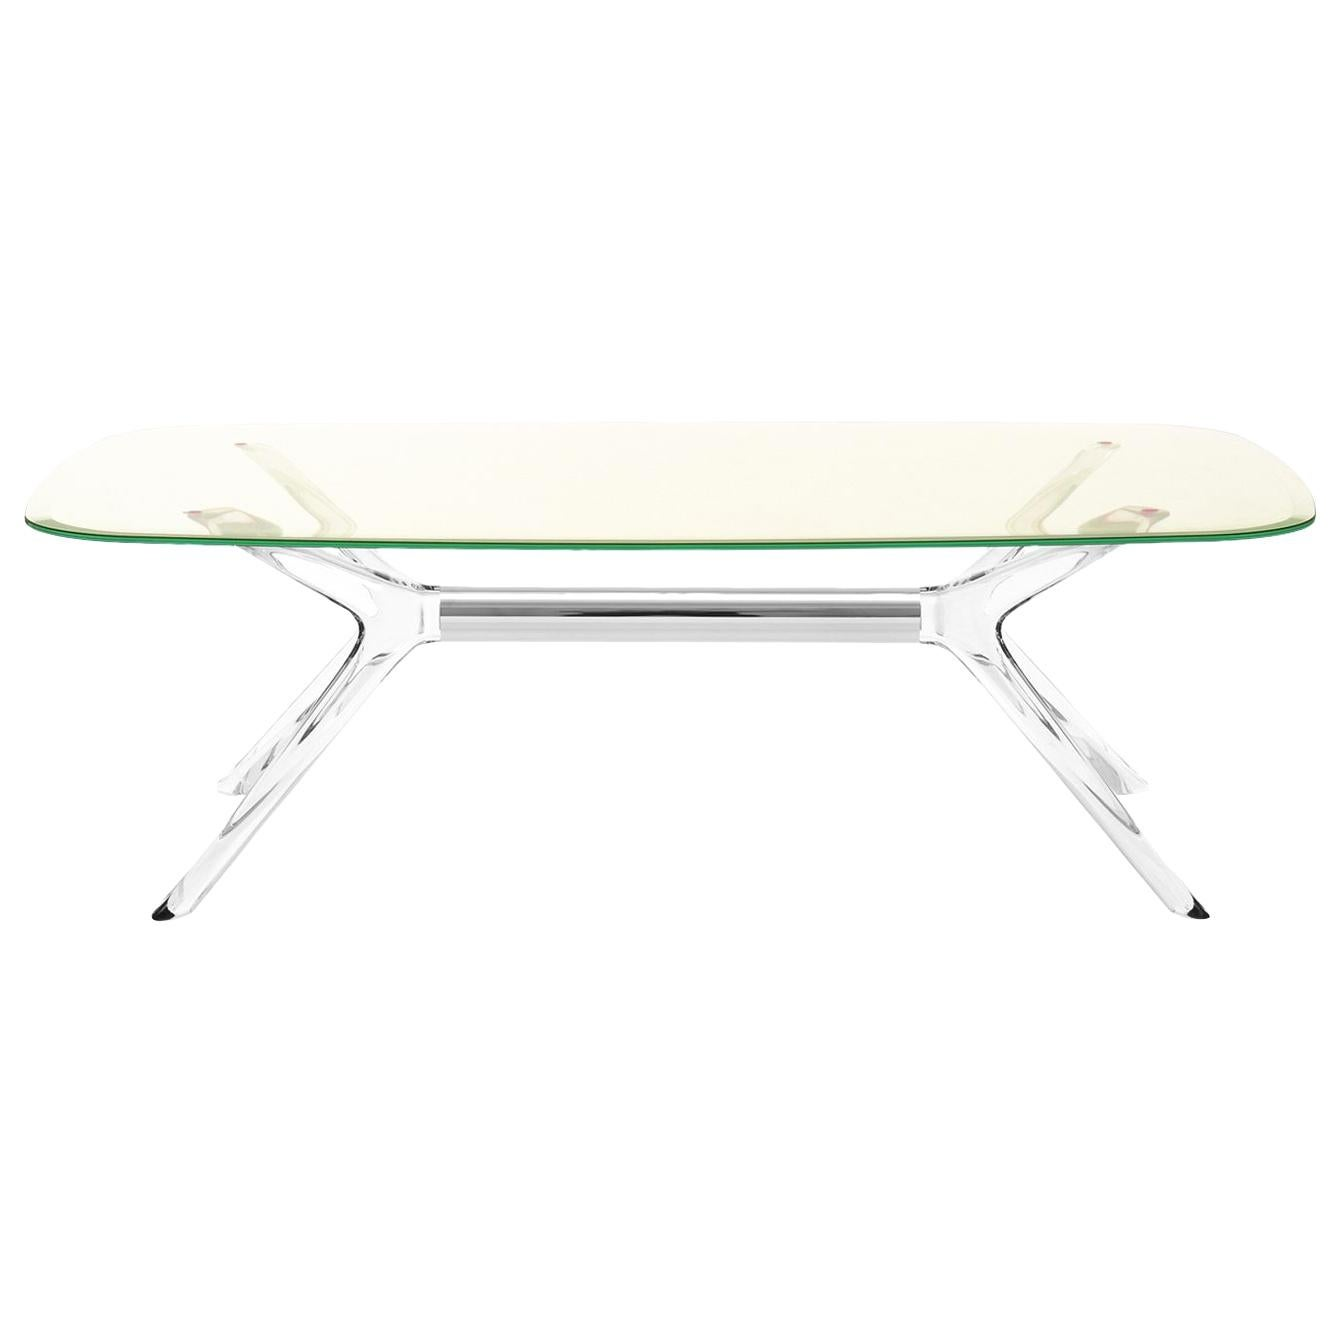 Kartell Blast Rectangle Table in Chrome with Yellow Top by Philippe Starck